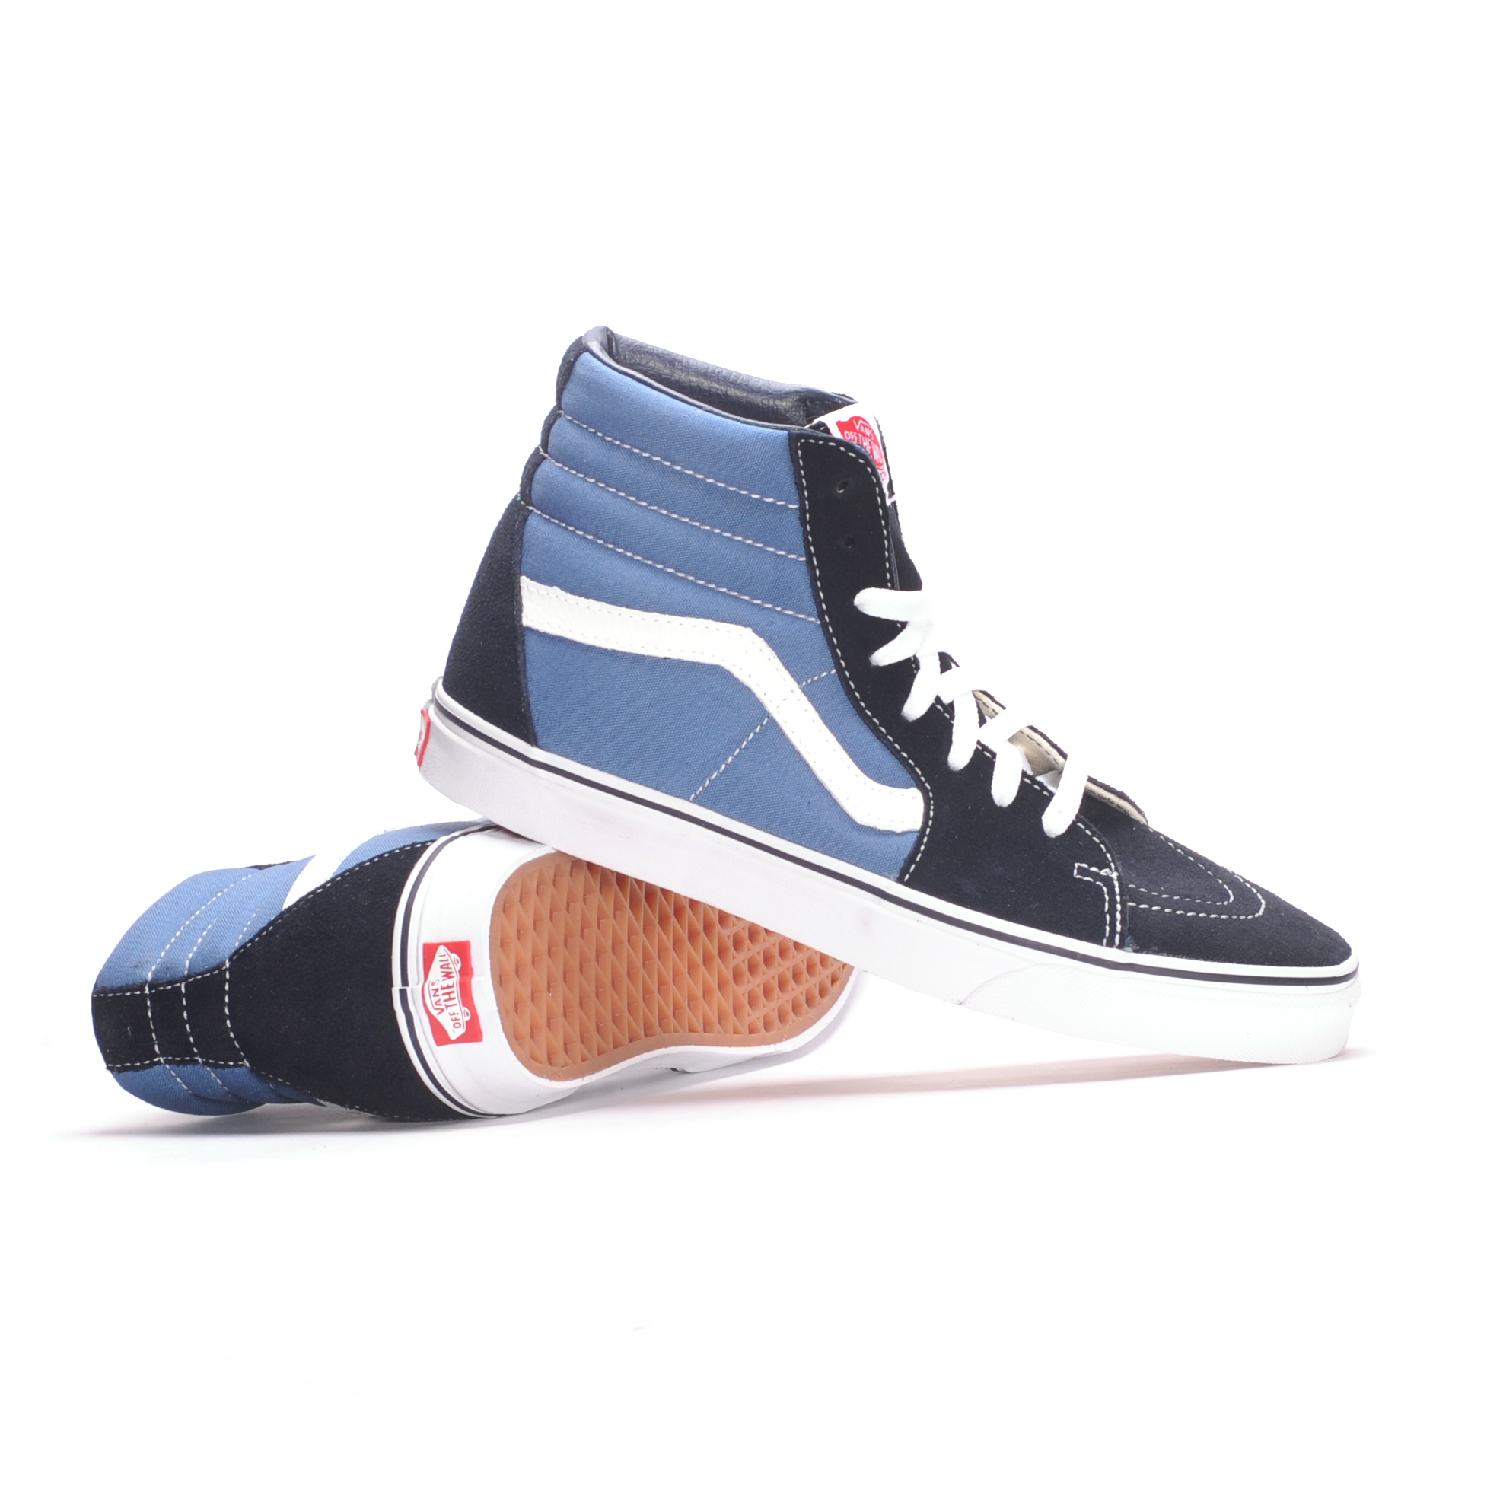 7ed3252048d3 Vans Sk8-Hi (Navy) Men s Skate Shoes